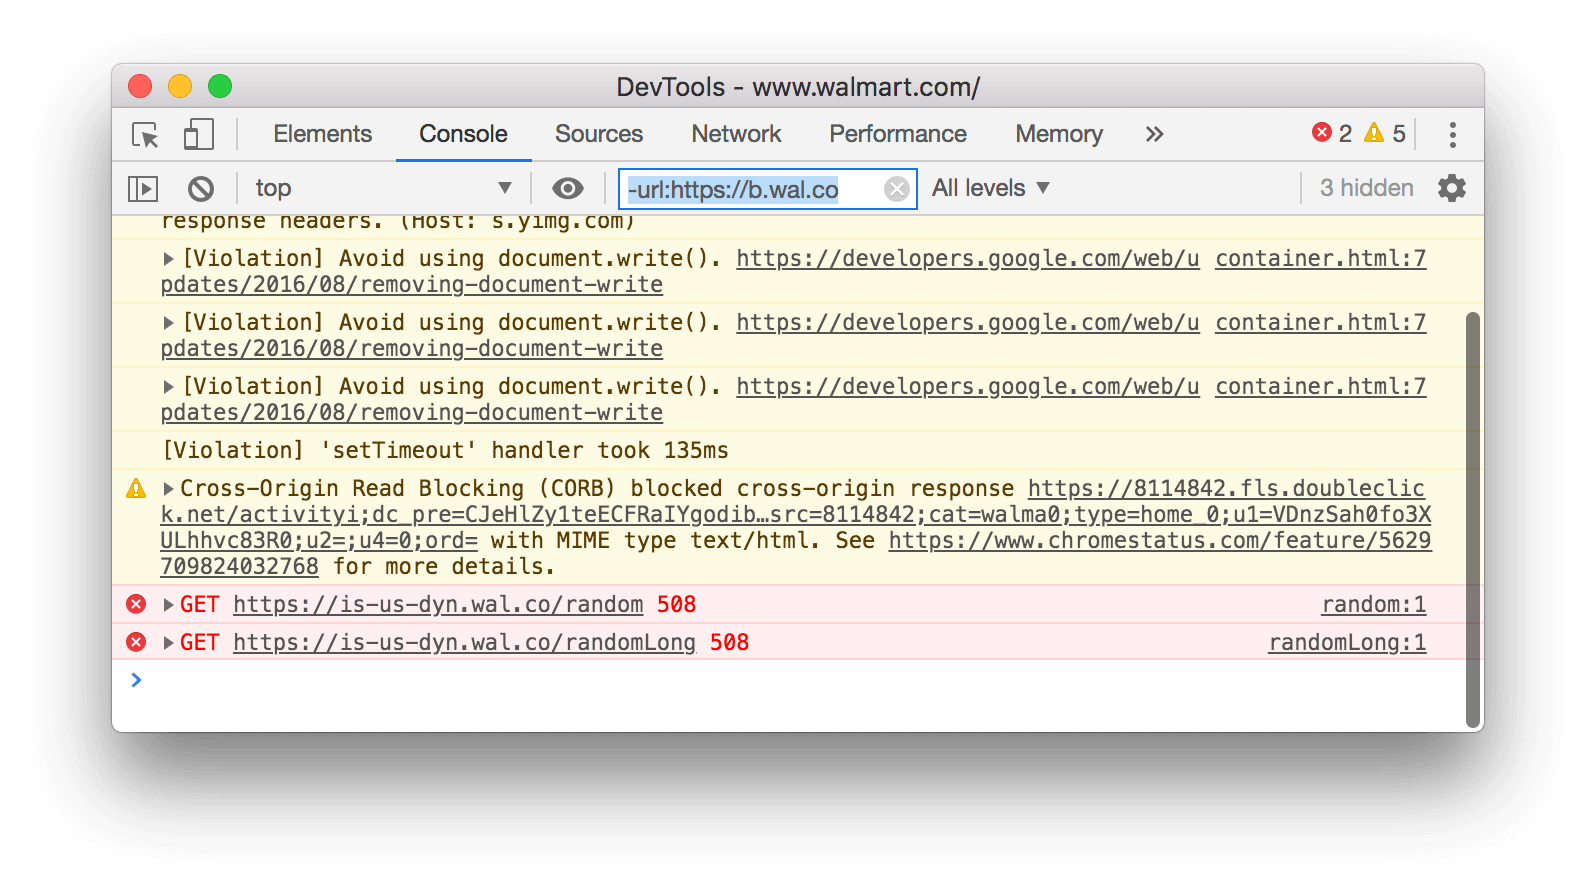 A negative URL filter. DevTools is hiding all messages that match the URL https://b.wal.co